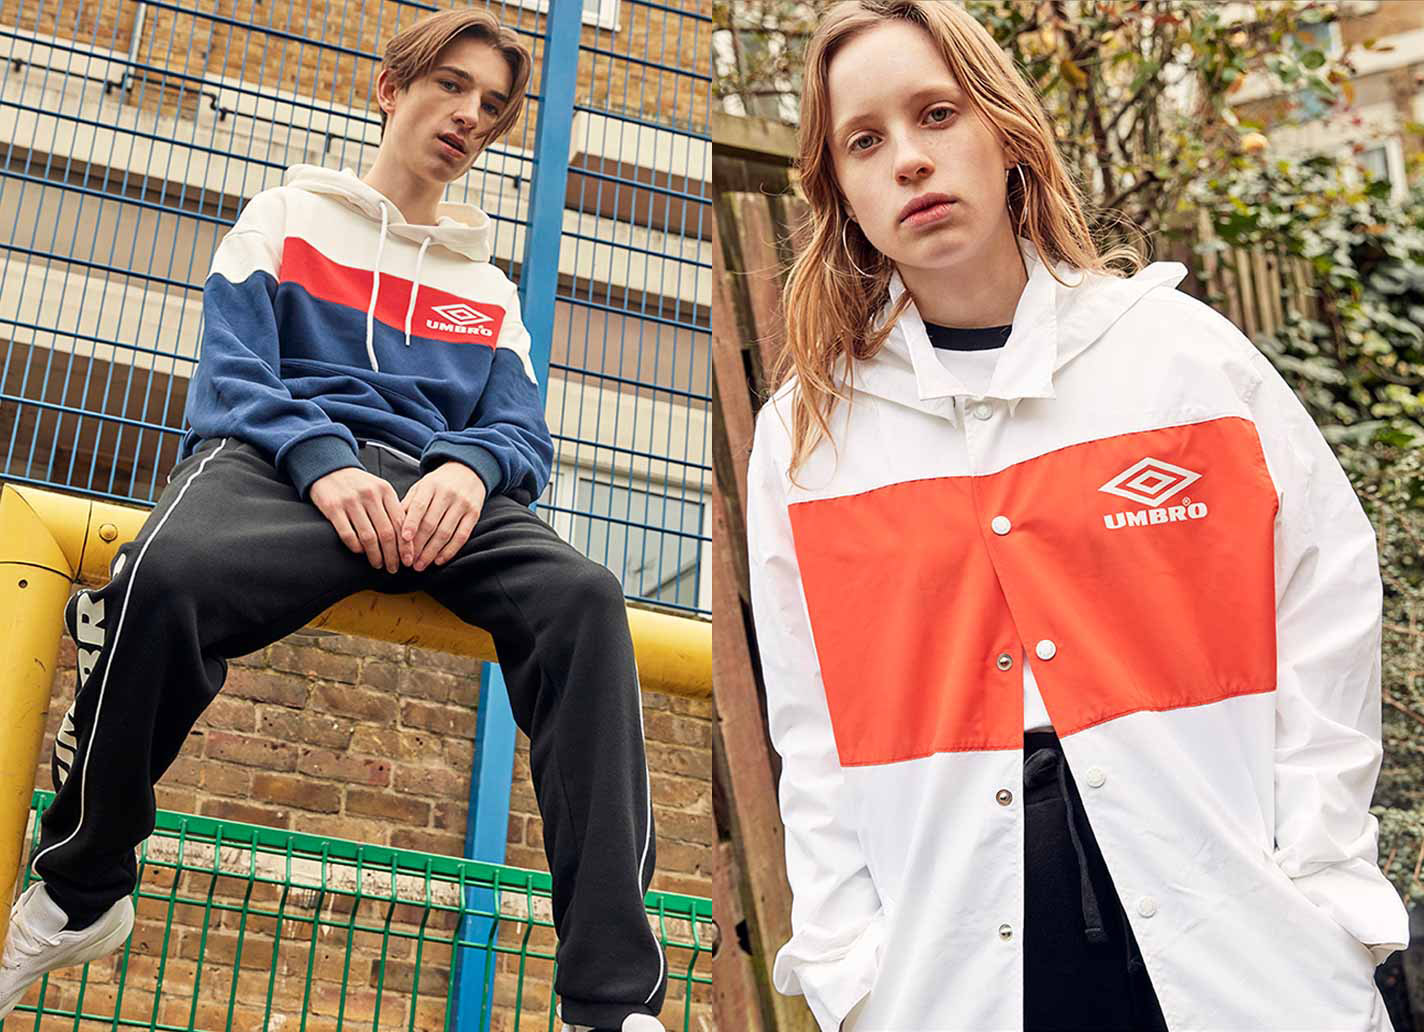 4-umbro-young-collective